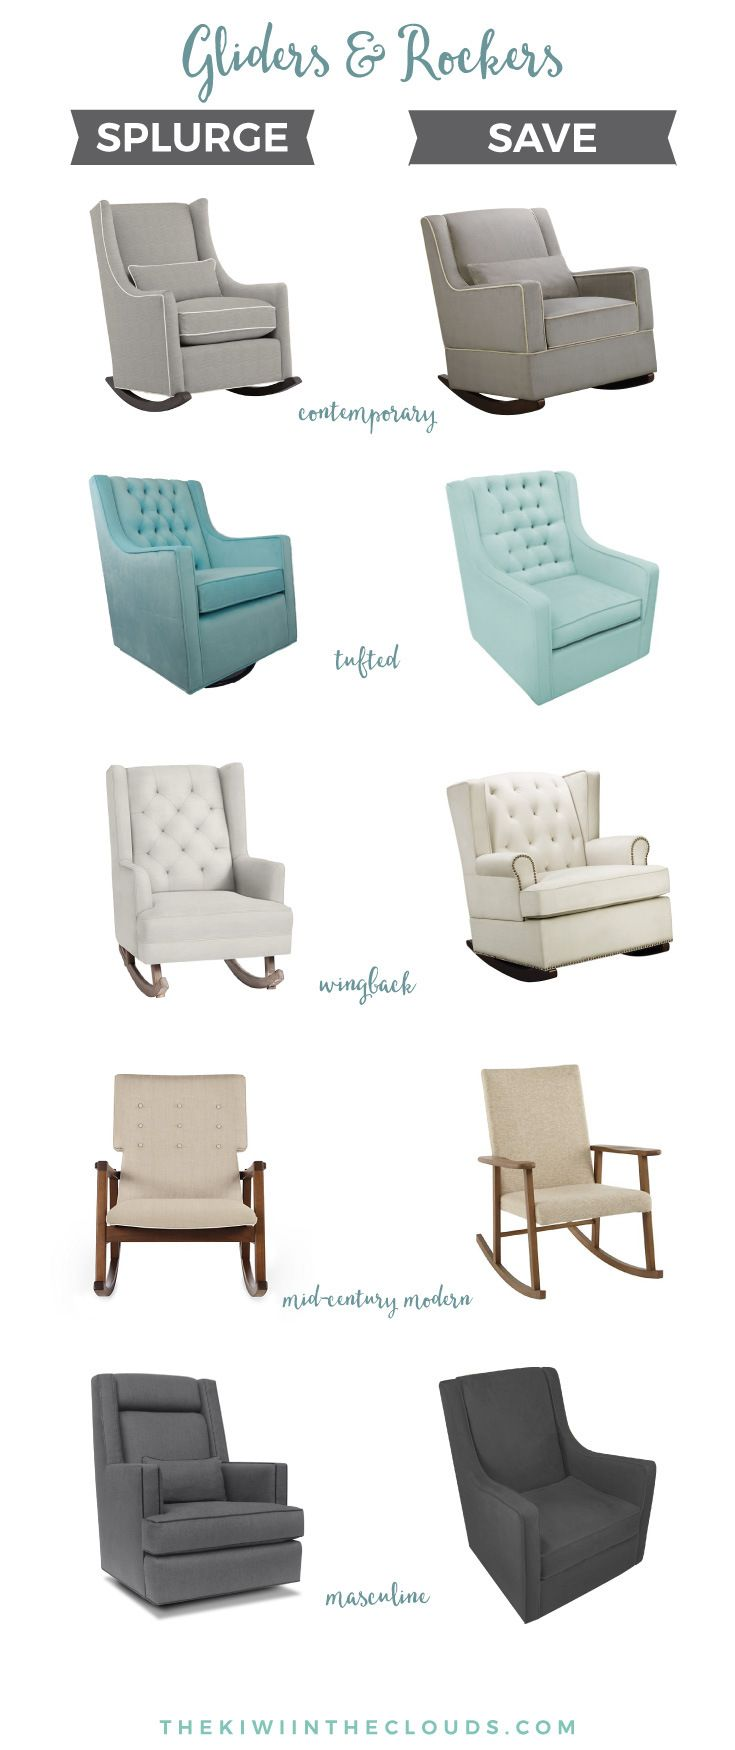 Nursery Gliders & Rockers For Every Budget | Are you searching for the perfect chair for your baby's nursery? Click through to find the perfect glider or rocker in your price range.